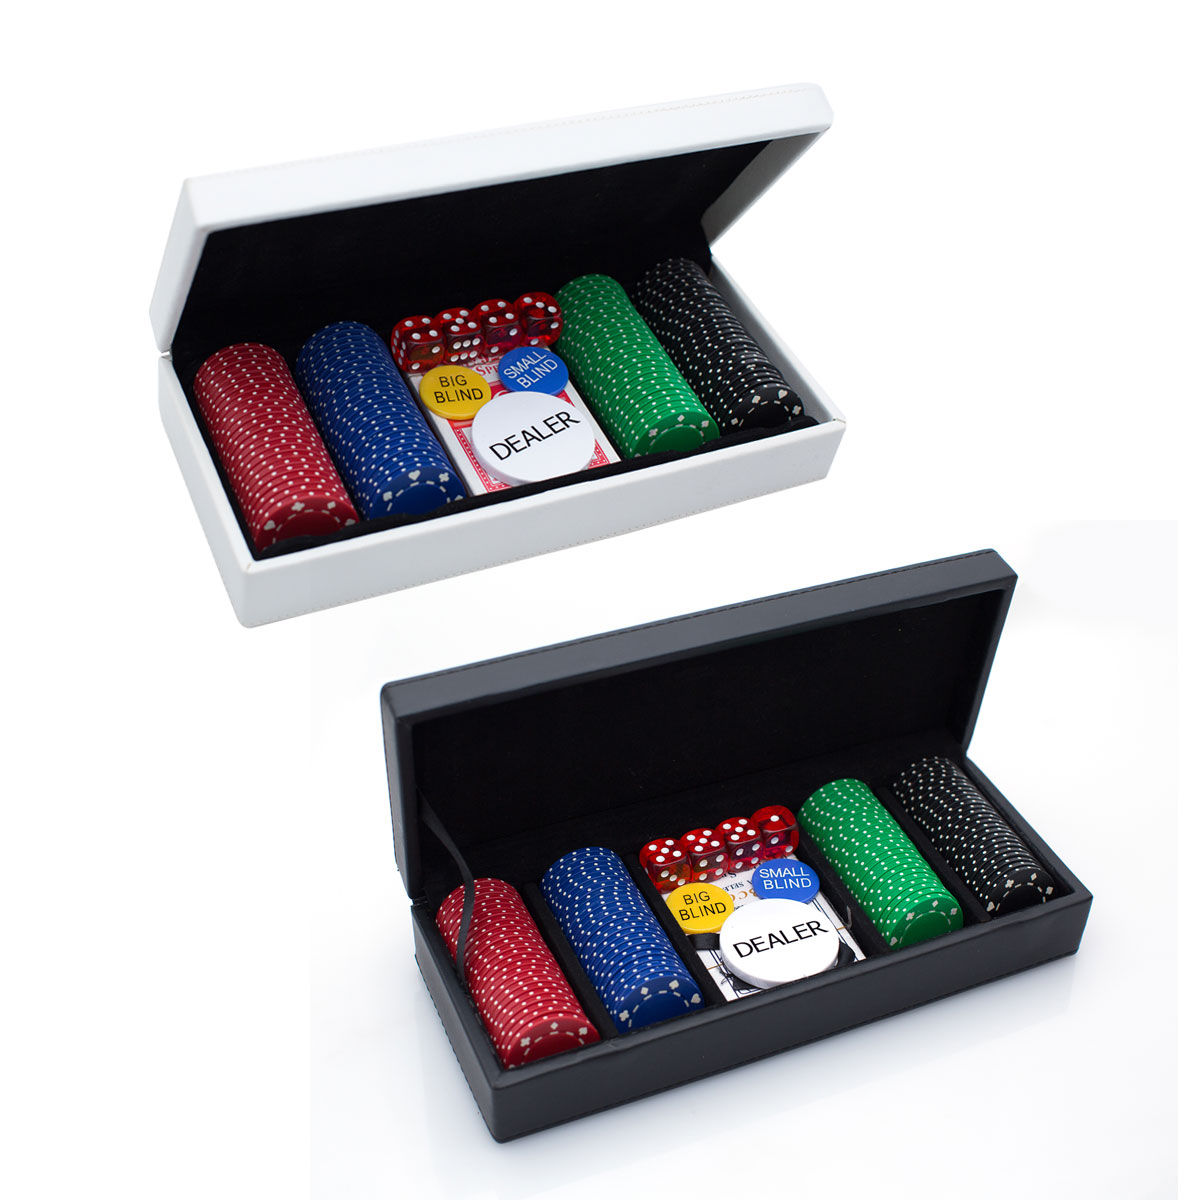 ROCCO 100 CHIP BOXED POKER SET